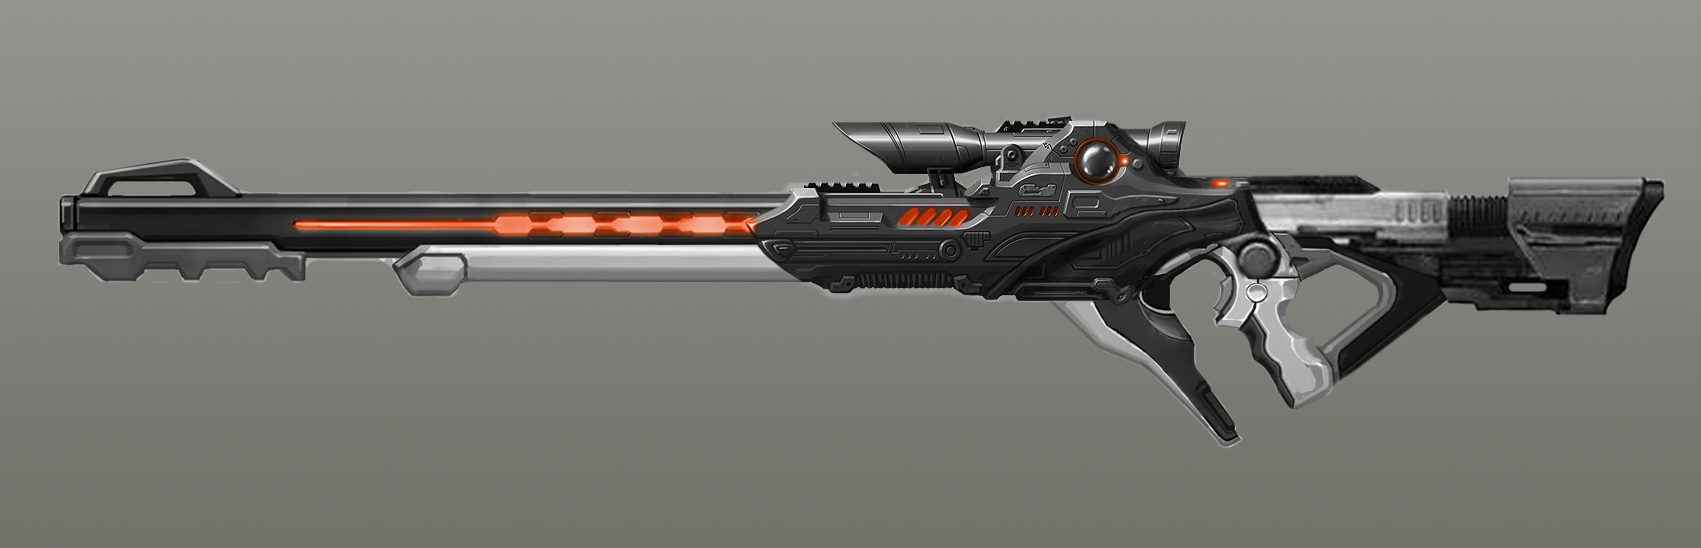 SciFi Sniper - From Concept to Game Ready